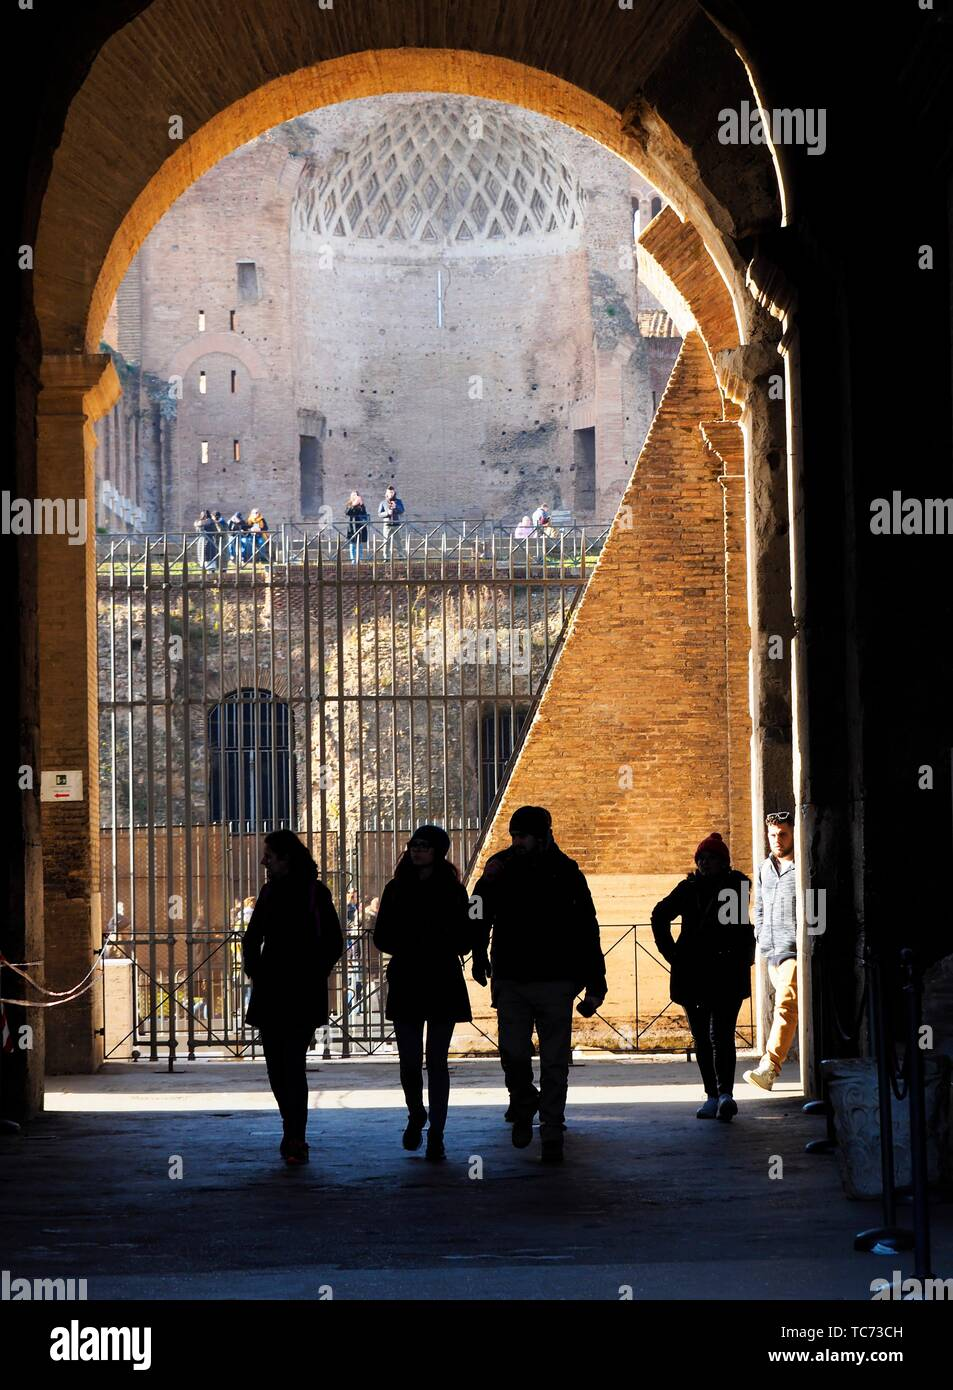 four people in sillhouette, colosseum, Rome, Italy. - Stock Image